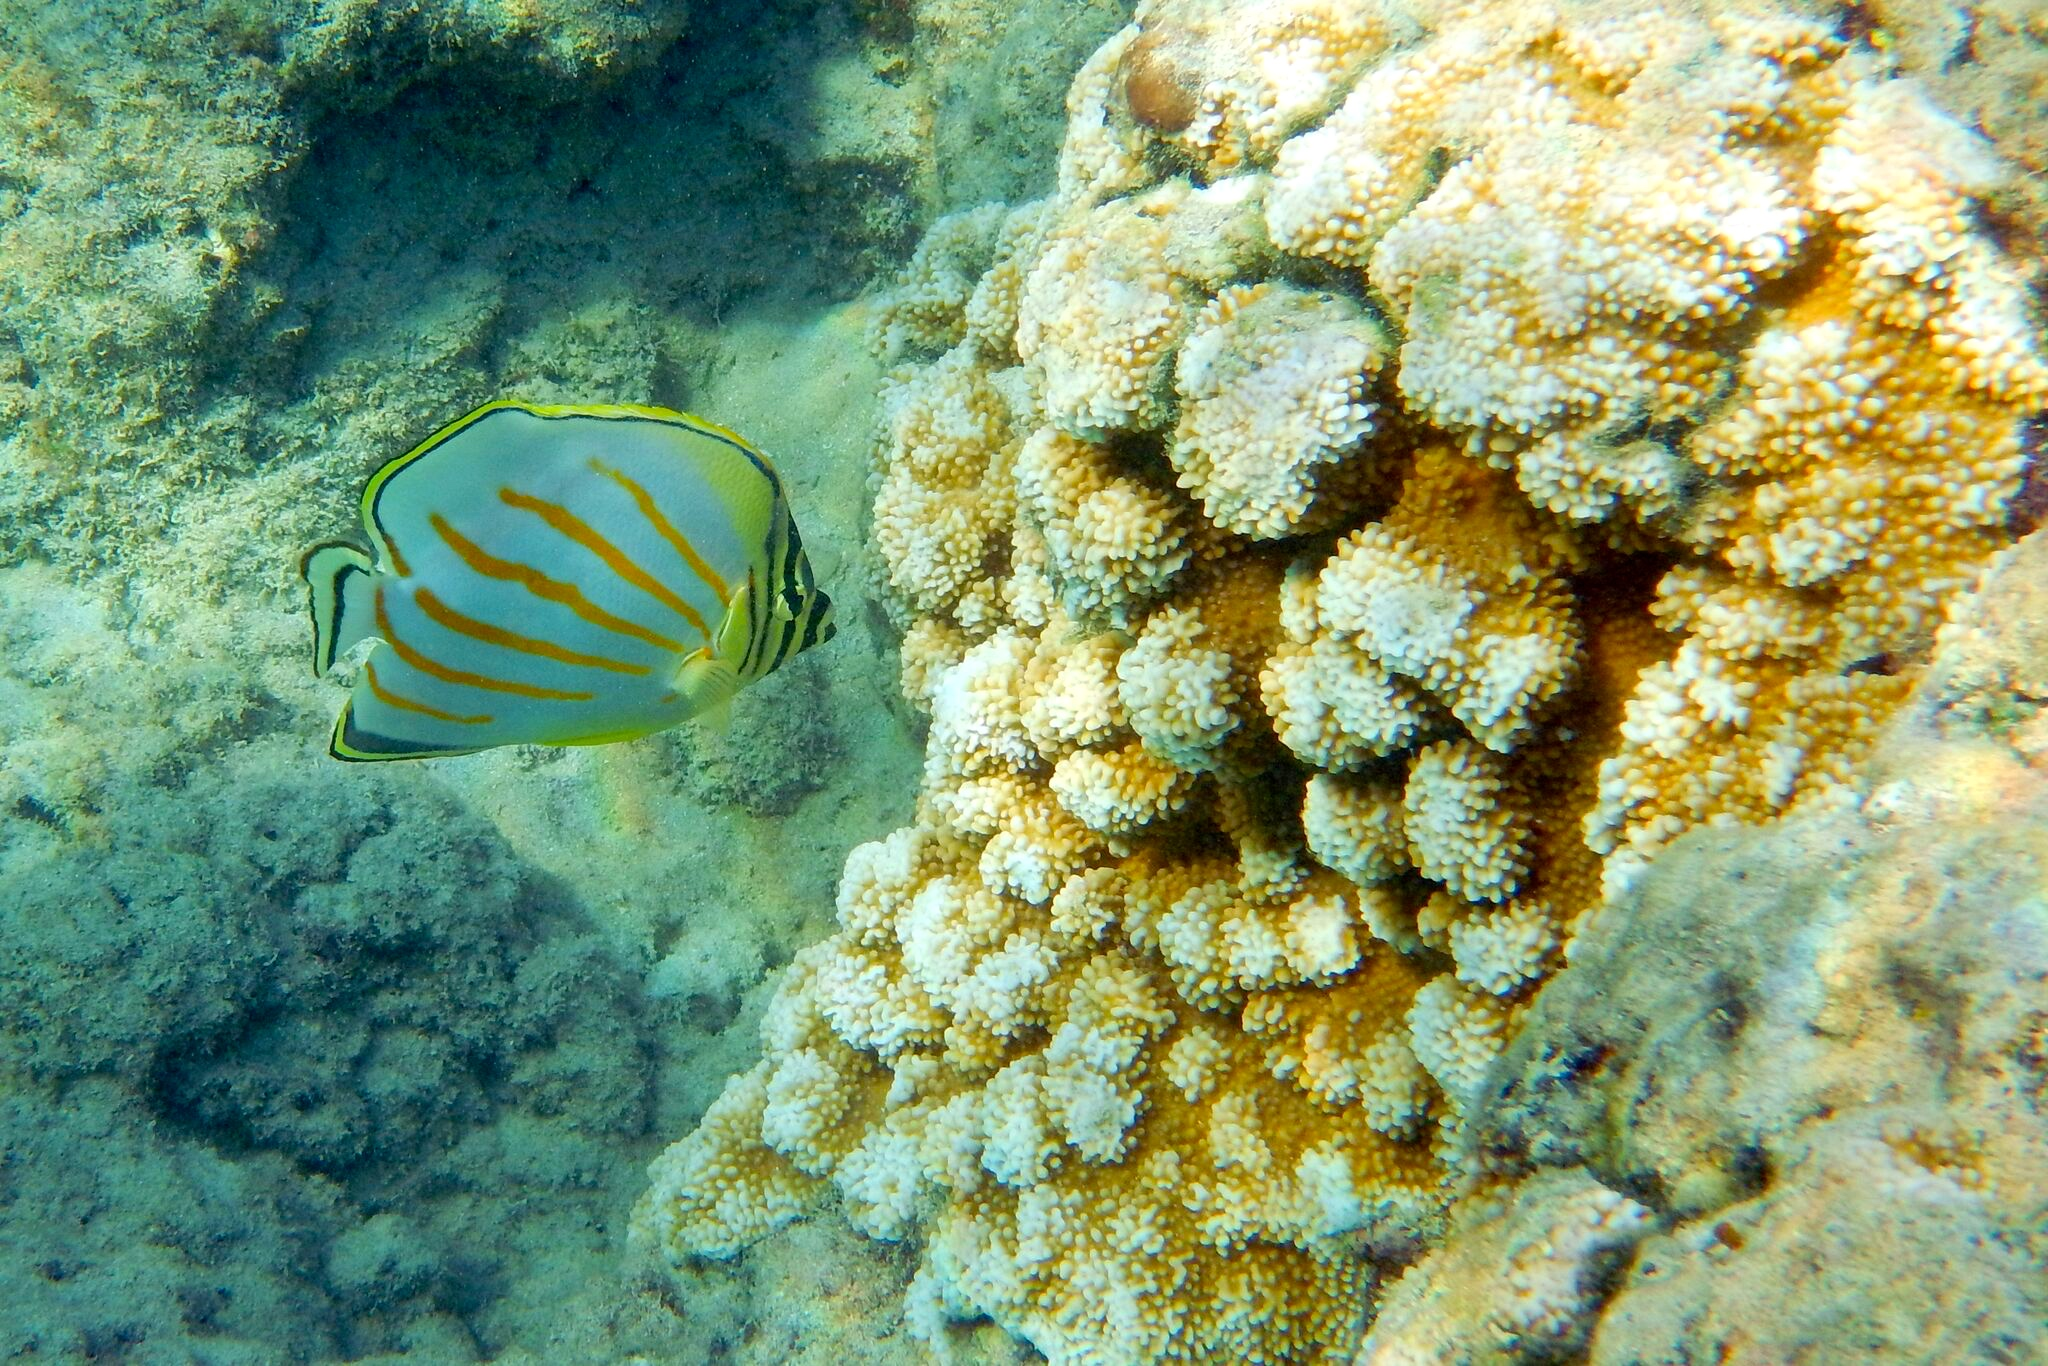 160410_Ornate Butterflyfish kīkākapu Hanauma Bay